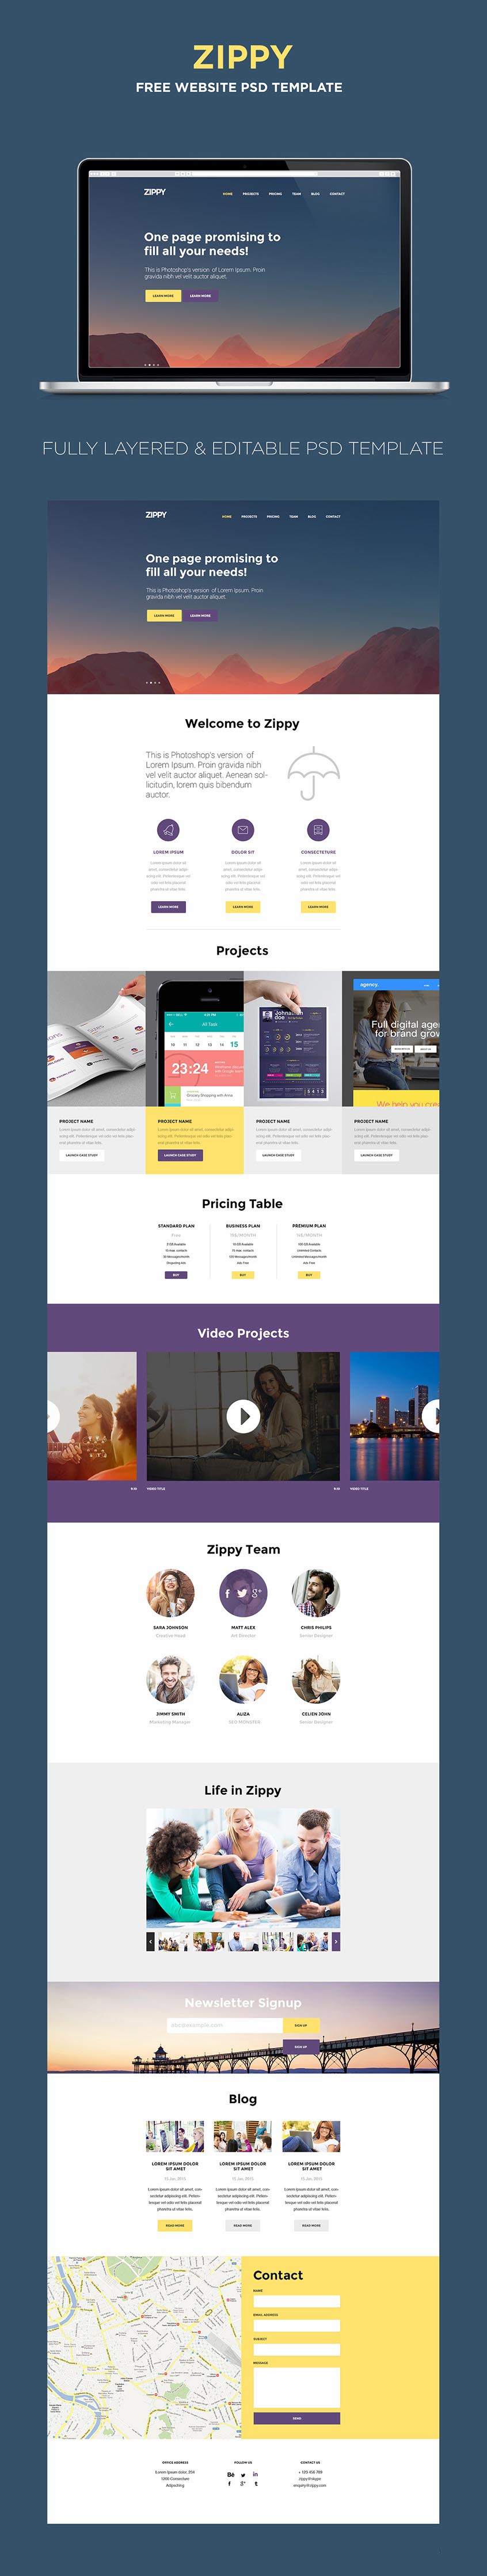 Free One Page Website Template | Landing Mi | Pinterest